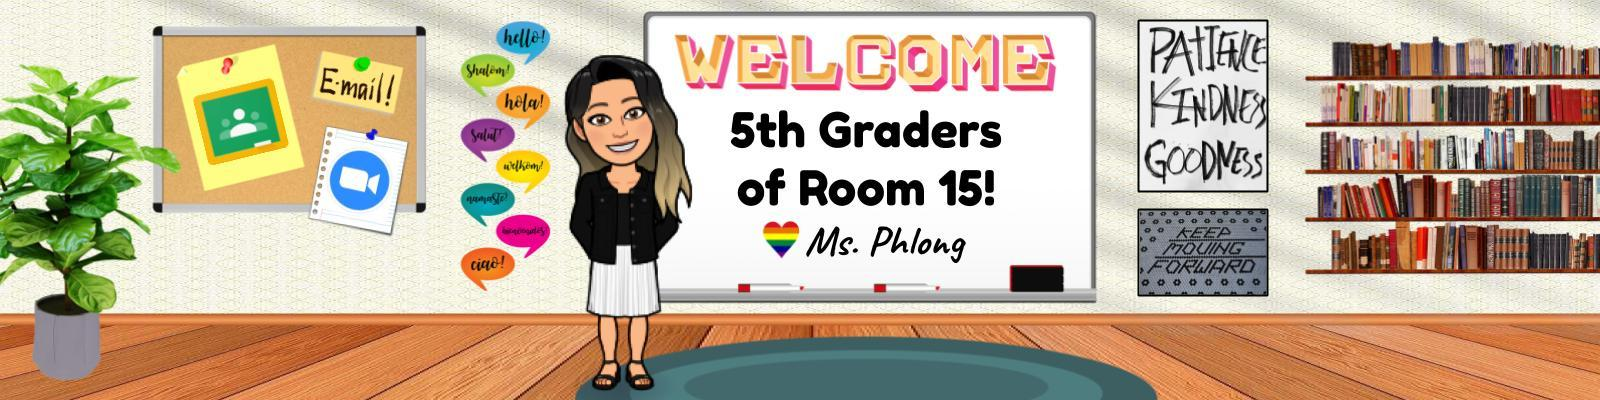 Welcome to Room 15, Fifth Graders!